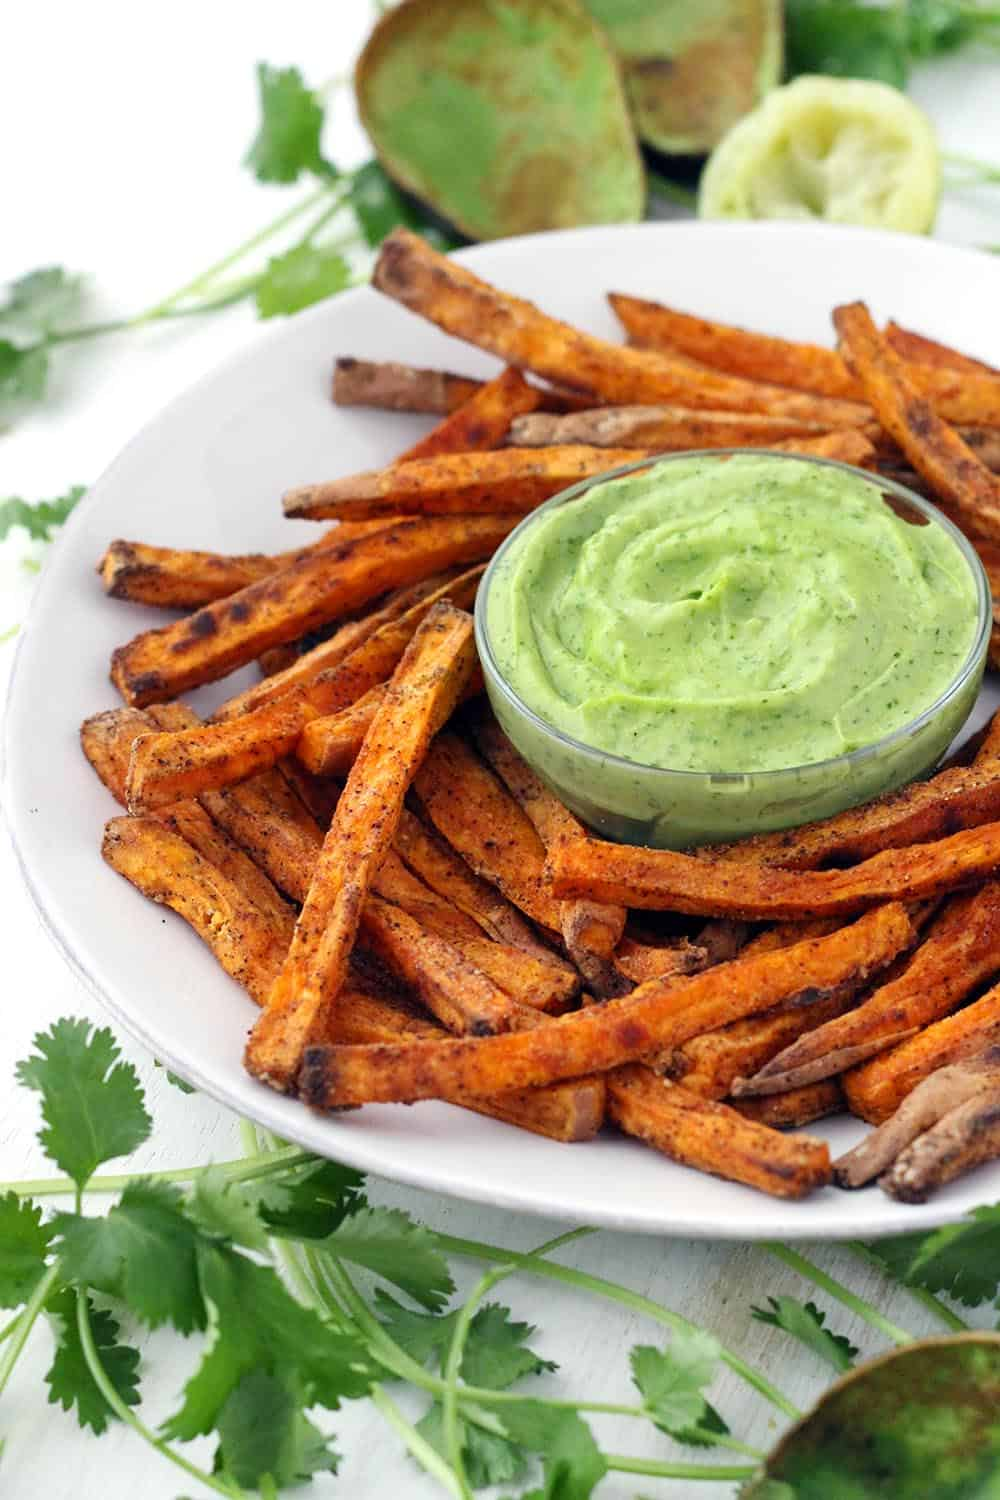 These crispy baked sweet potato fries are coated in chili powder, garlic, and a light coat of corn starch, which helps to make them crispy! Perfect for dipping into the cool, smooth, and creamy avocado cilantro sauce.